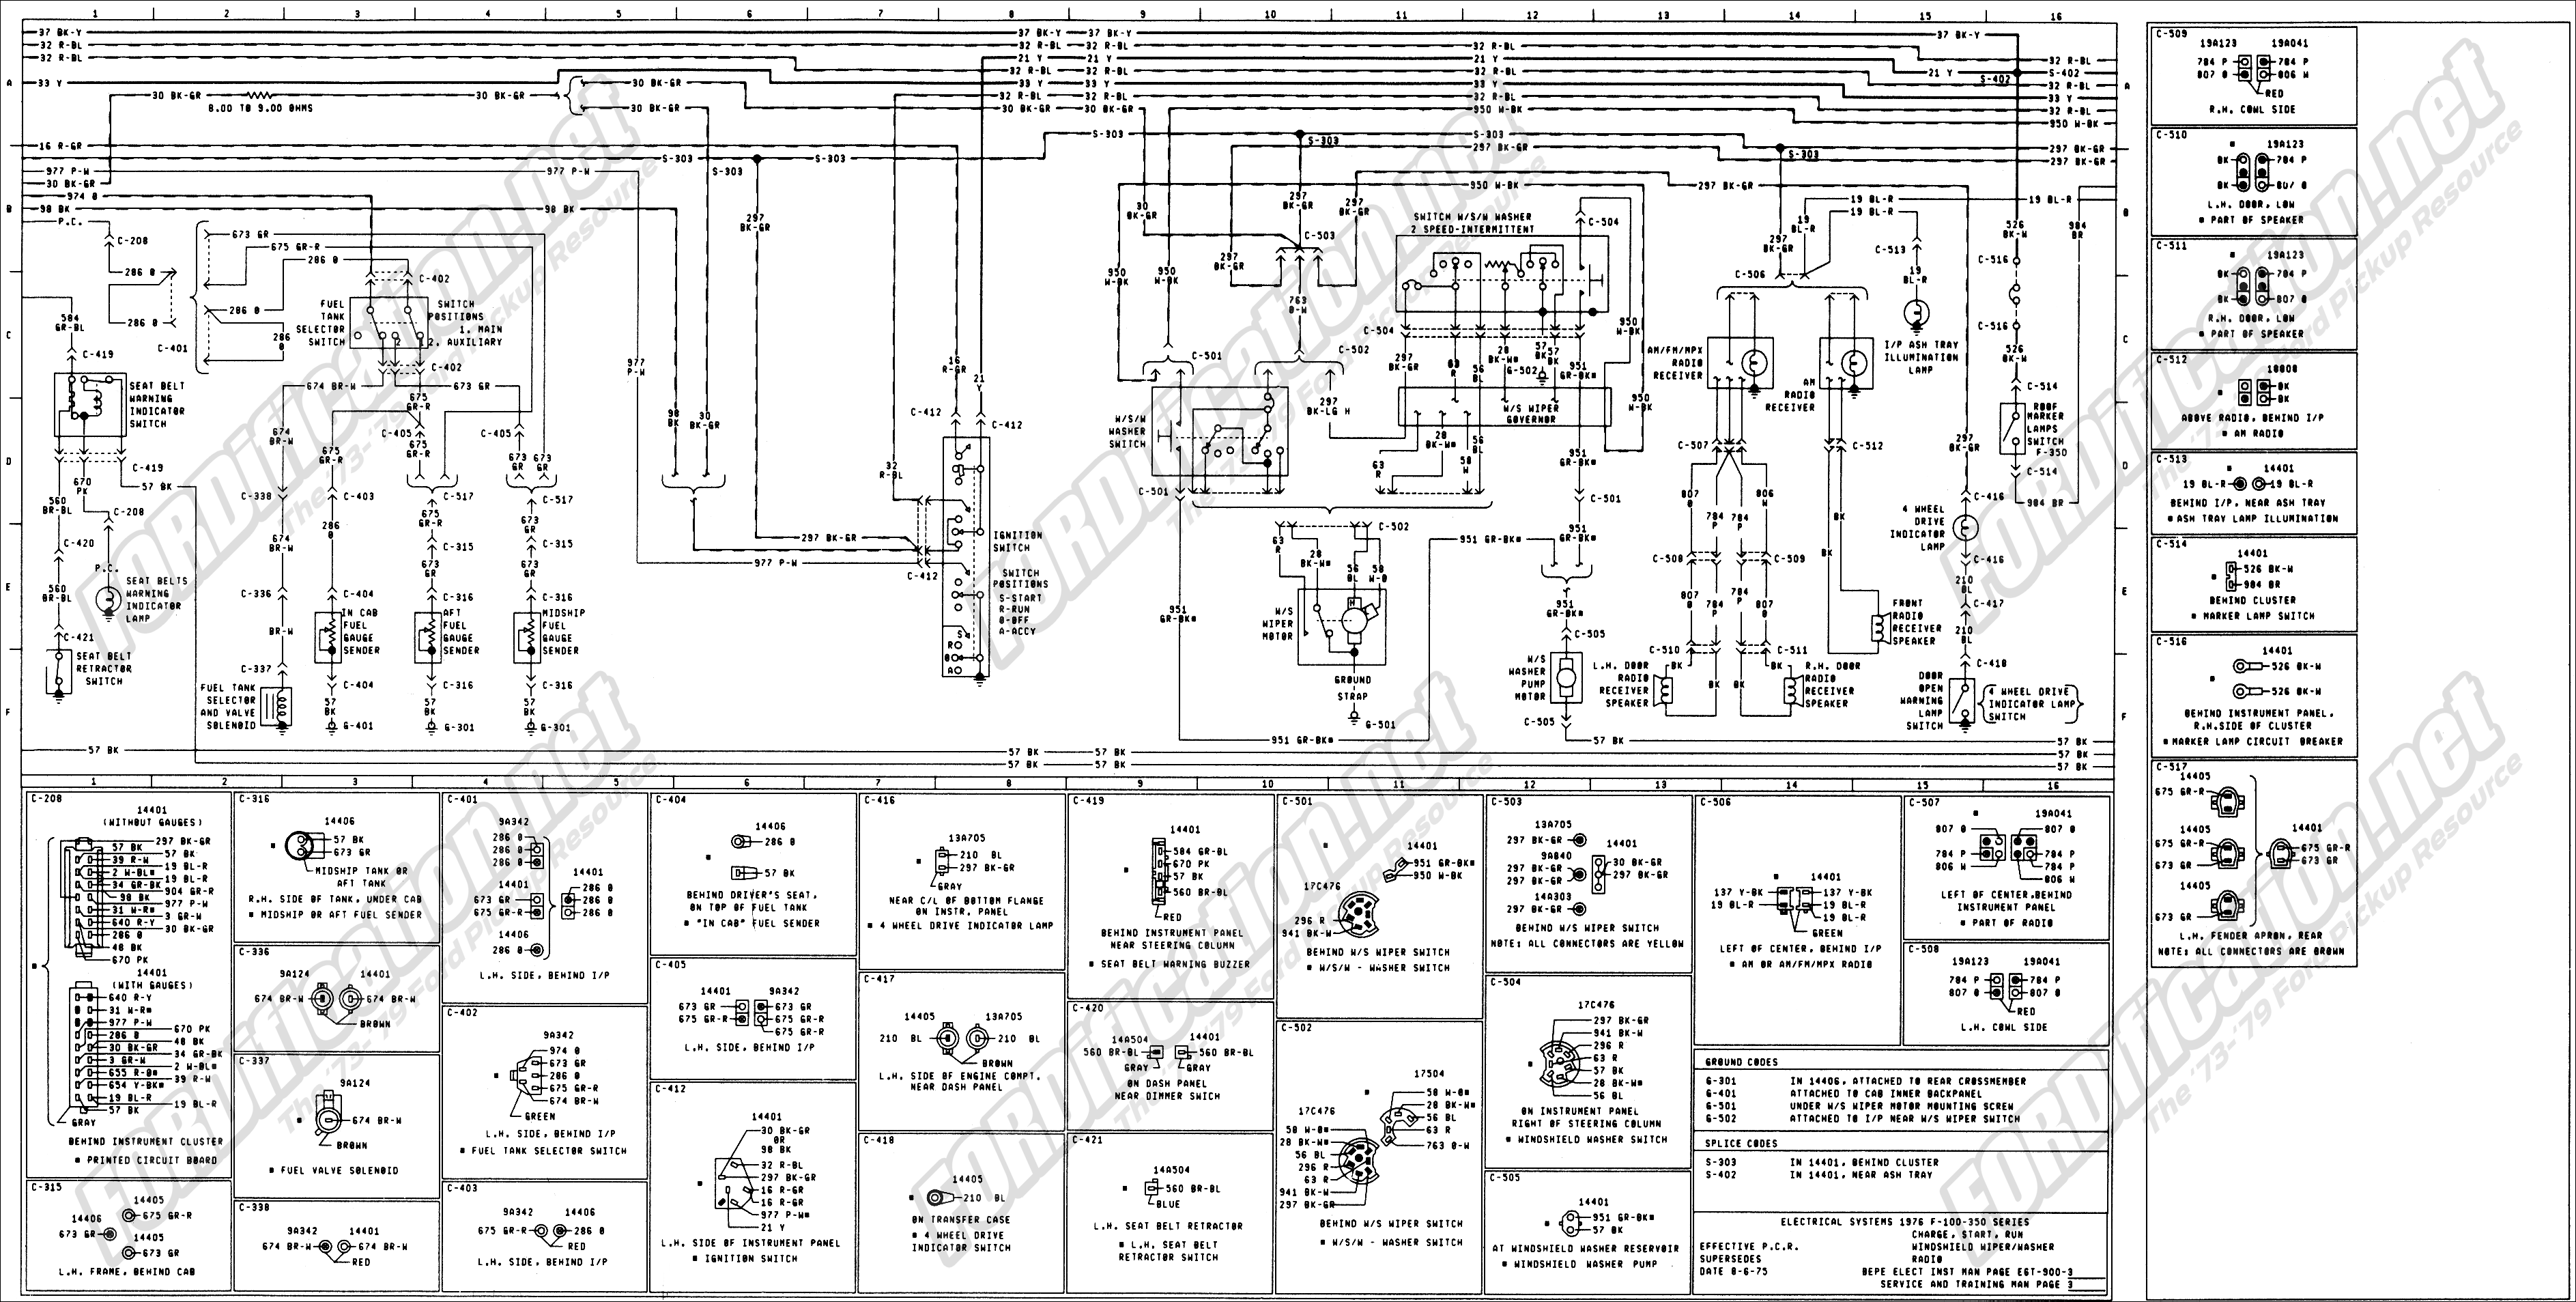 1999 Ford F150 Radio Wiring Diagram Manual Of Factory 1973 1979 Truck Diagrams Schematics